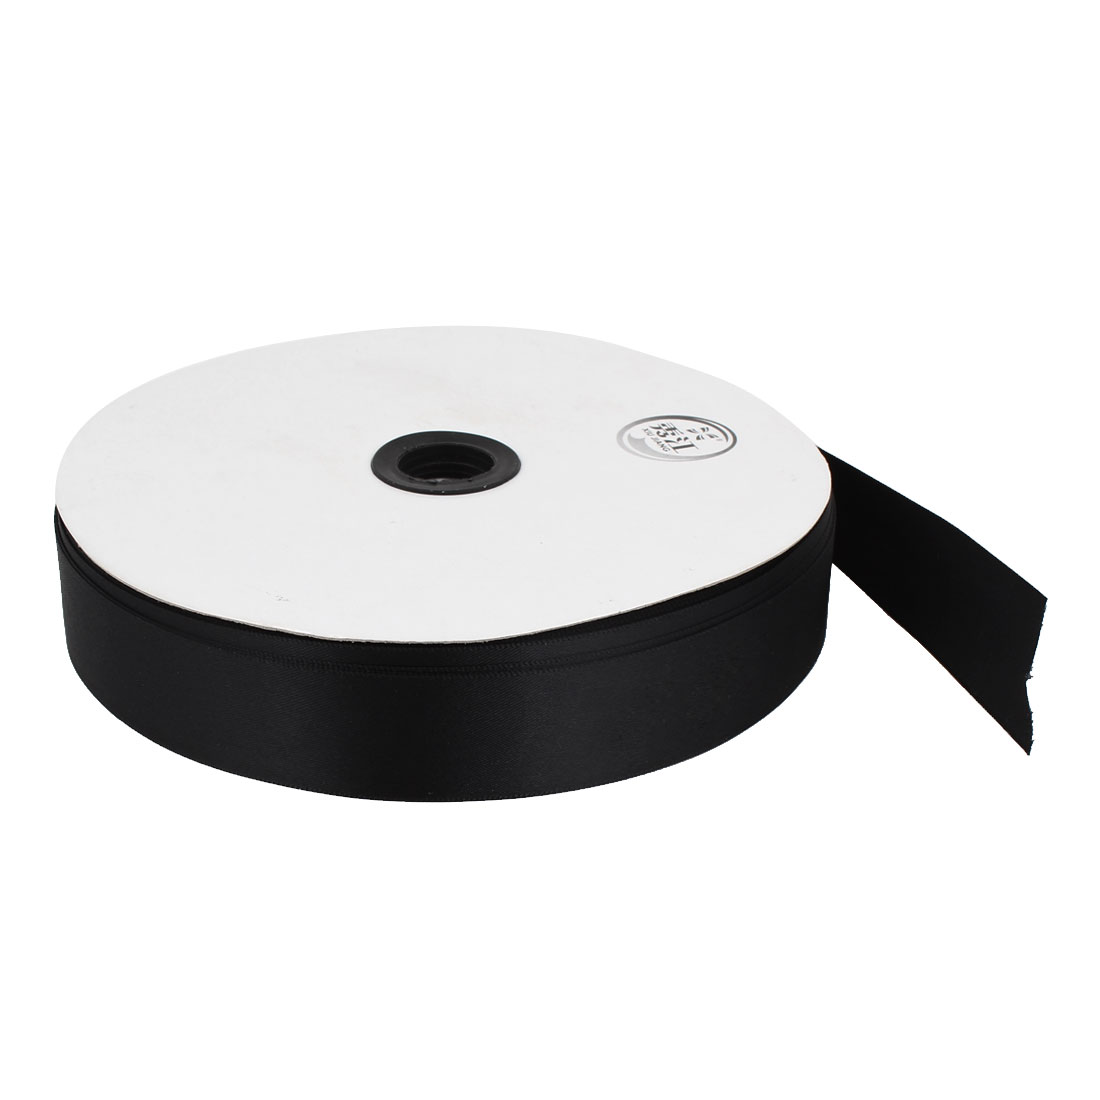 Black 2.5cm Width DIY Craft Wedding Party Sewing Decor Ribbon Roll Tape 100 Yard 91m Length